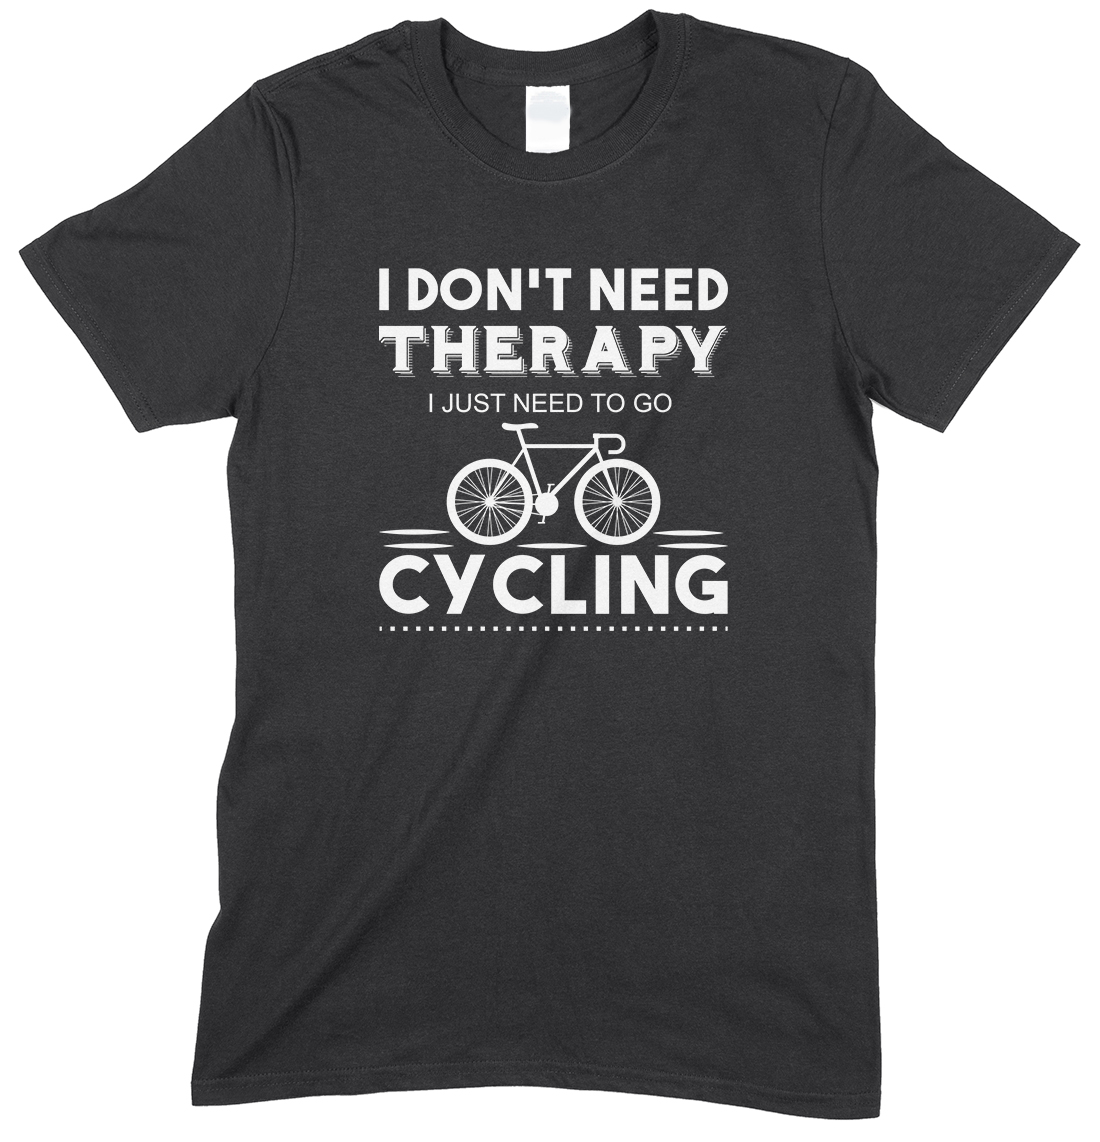 I Don't Need Therapy I Just Need to Go Cycling - Child's T Shirt Boy/Girl